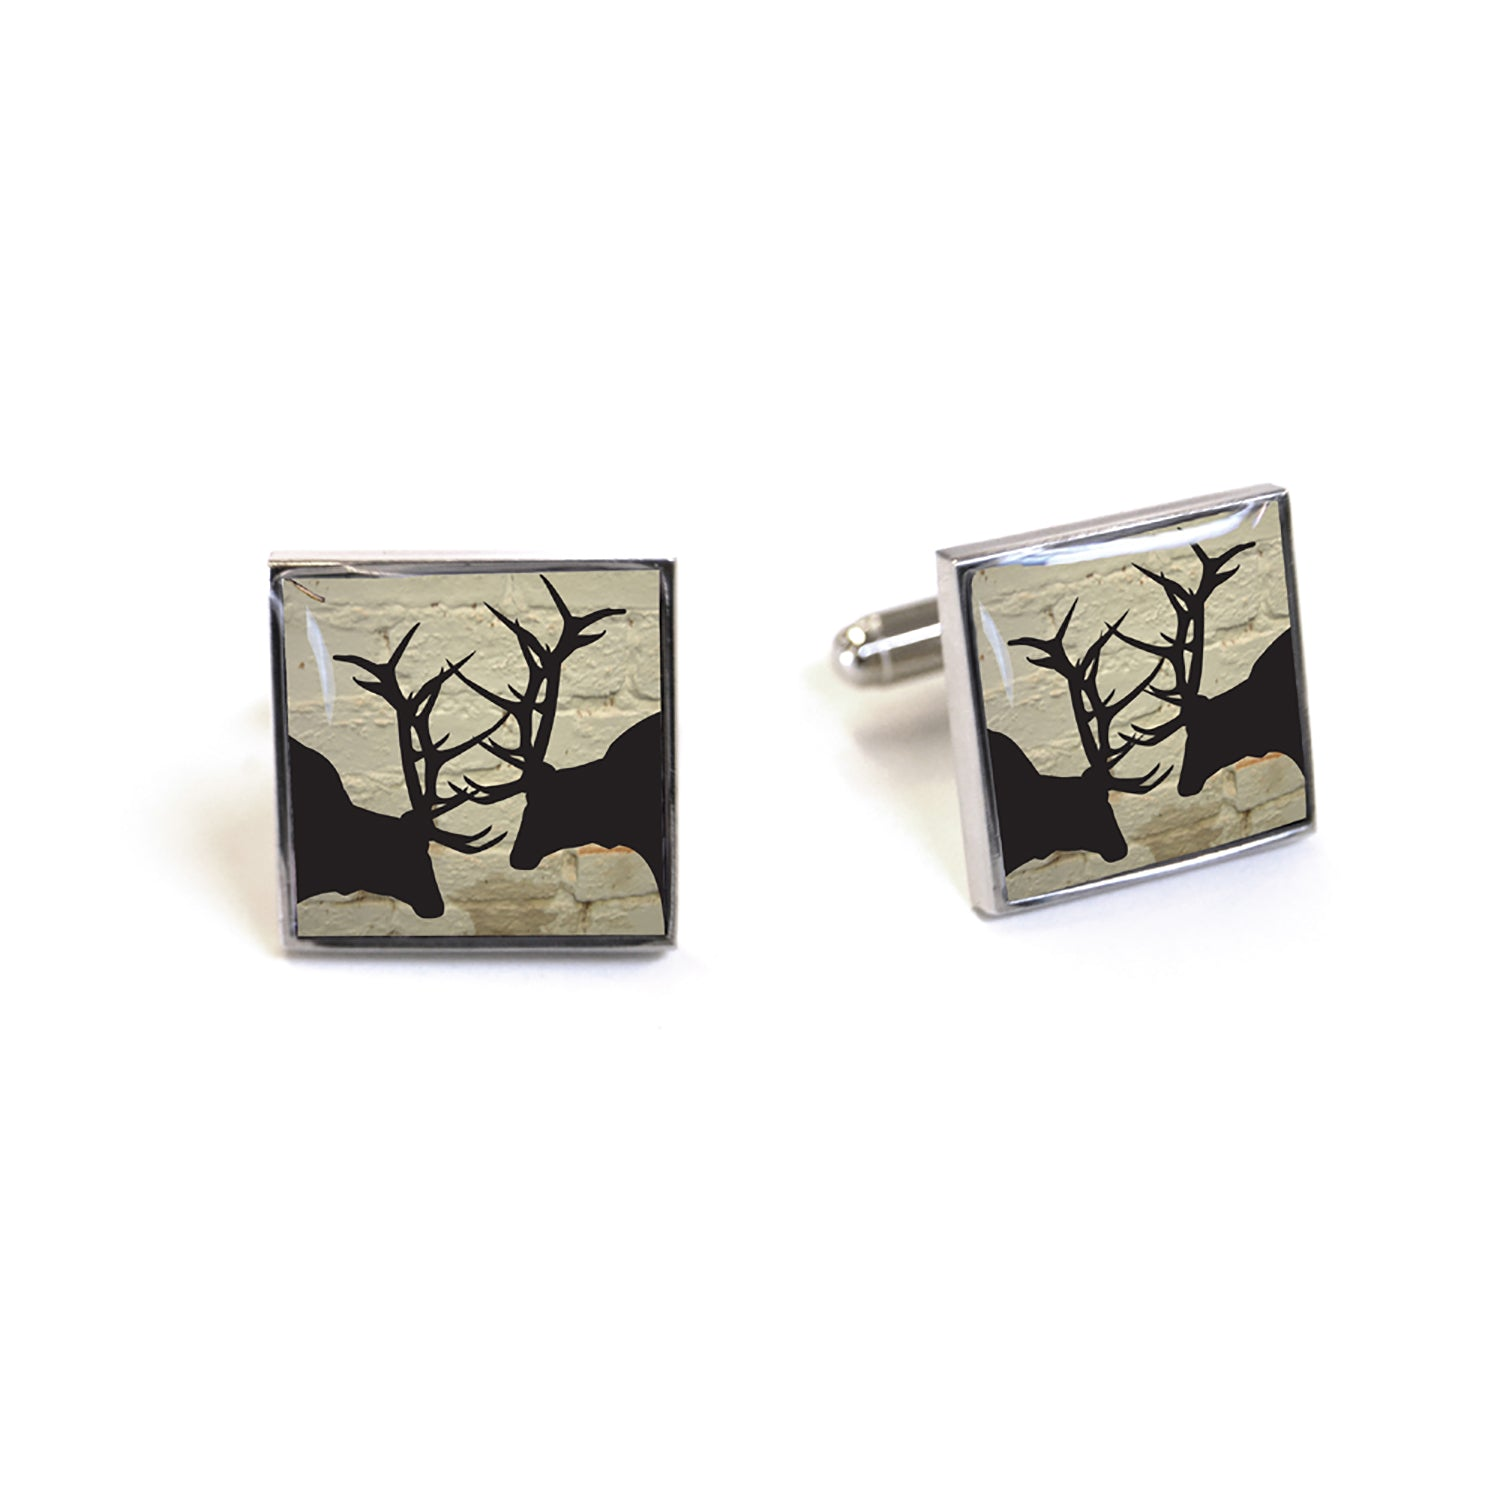 Tyler and Tyler Rut White Brick Enamel Cufflinks for Men